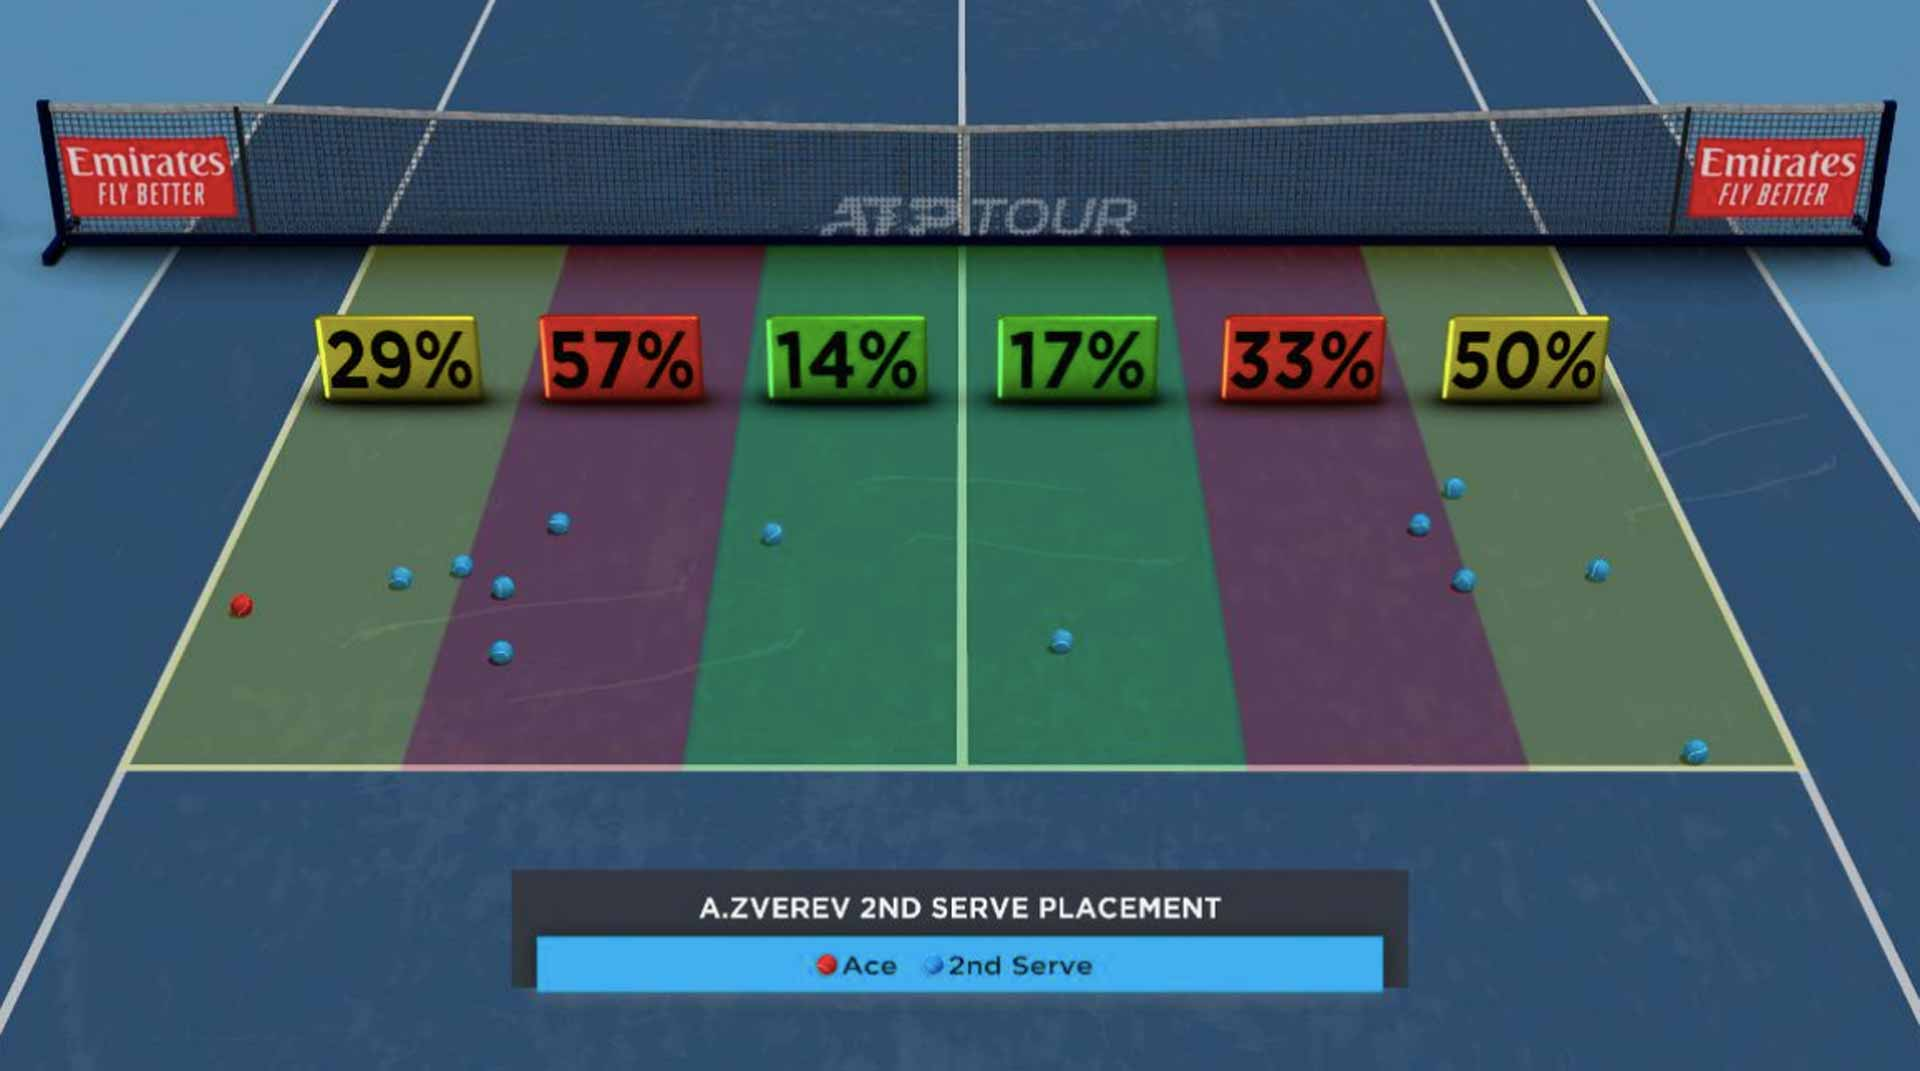 Zverev Second-Serve Placement